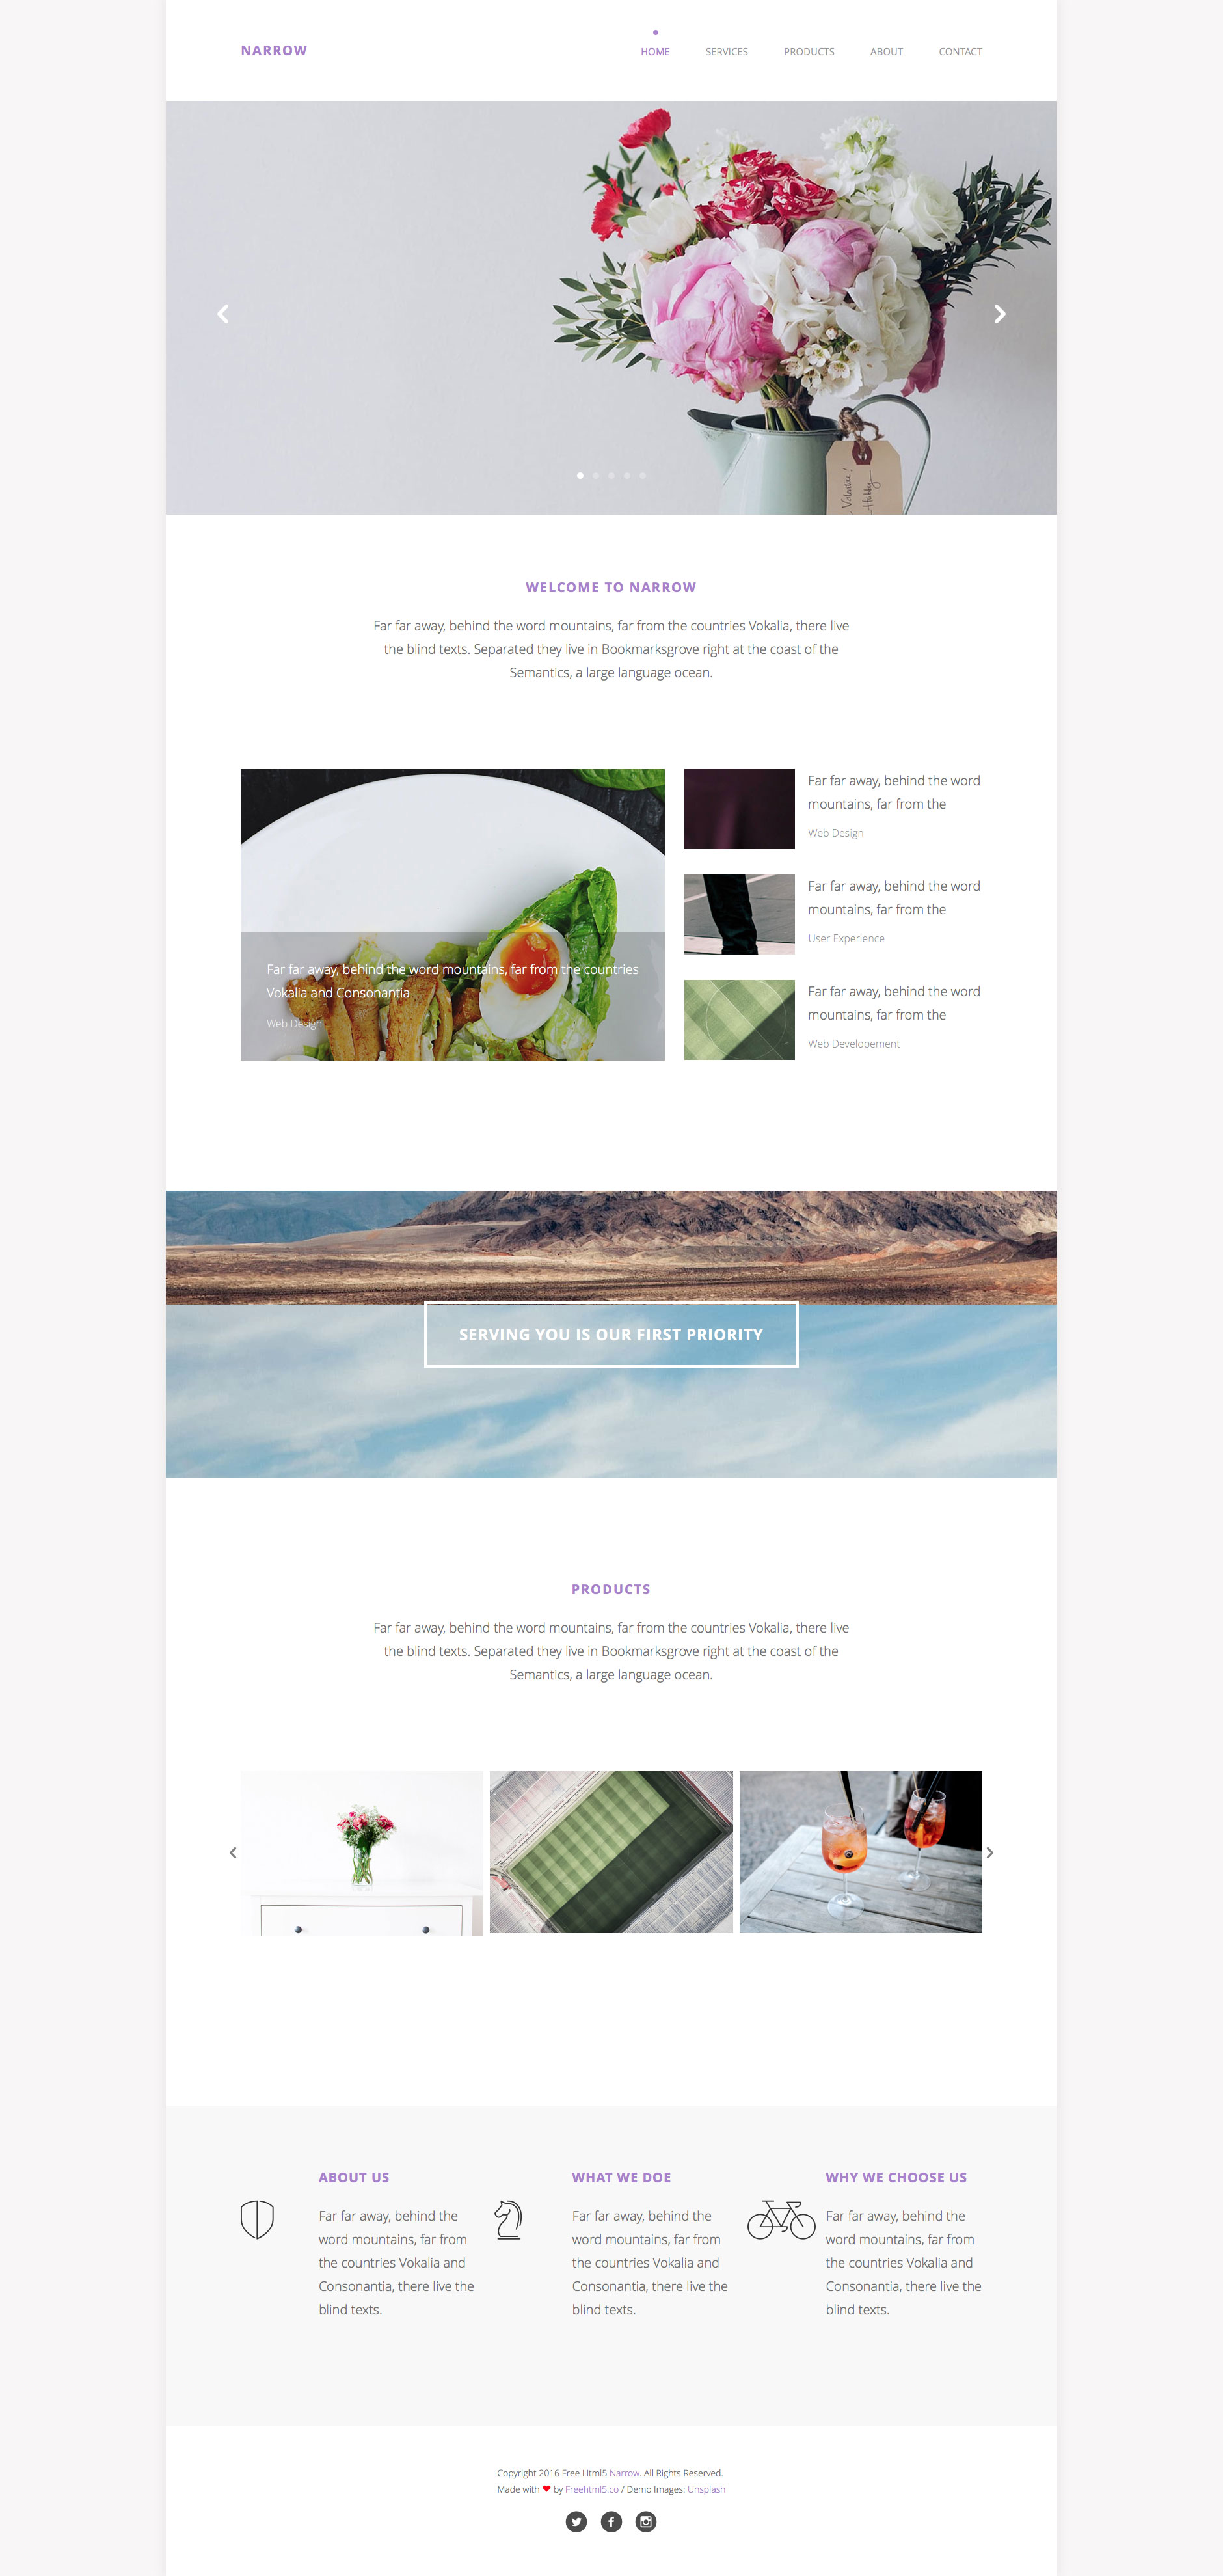 Narrow is a free responsive multipurpose HTML5 template using bootstrap 3 framework. It is the perfect template for any type of business website. Narrow has a features like parallax, css animation. This template is built with the latest HTML5 & CSS3 technology.